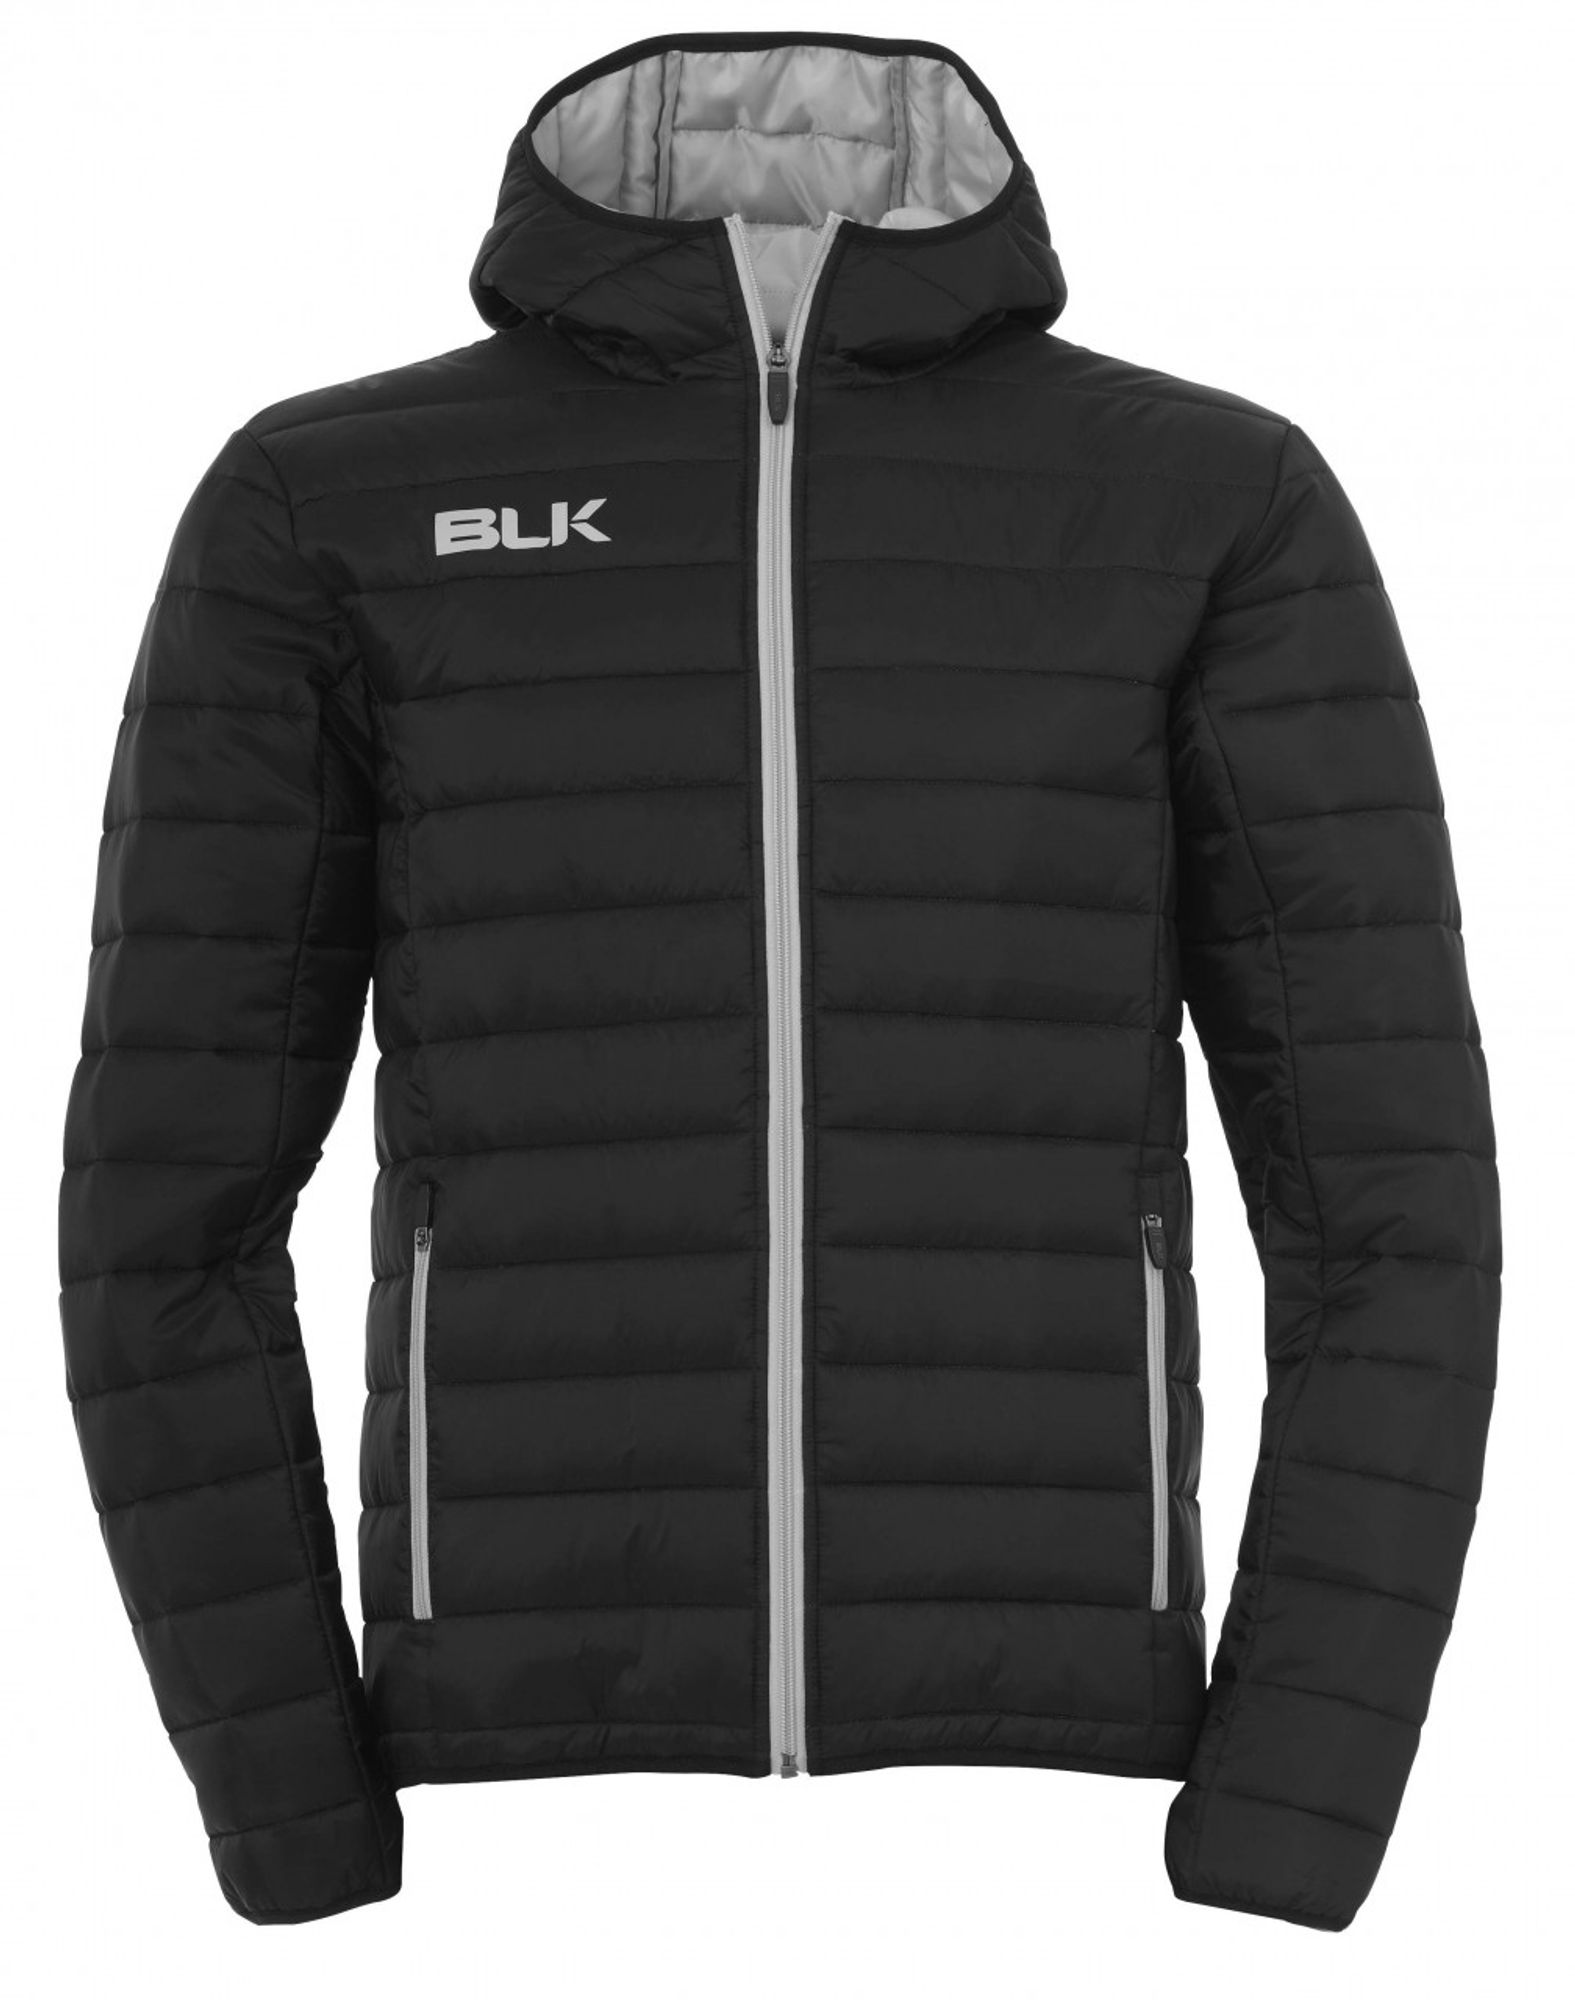 BLK Ultra Light Down Jacket - schwarz